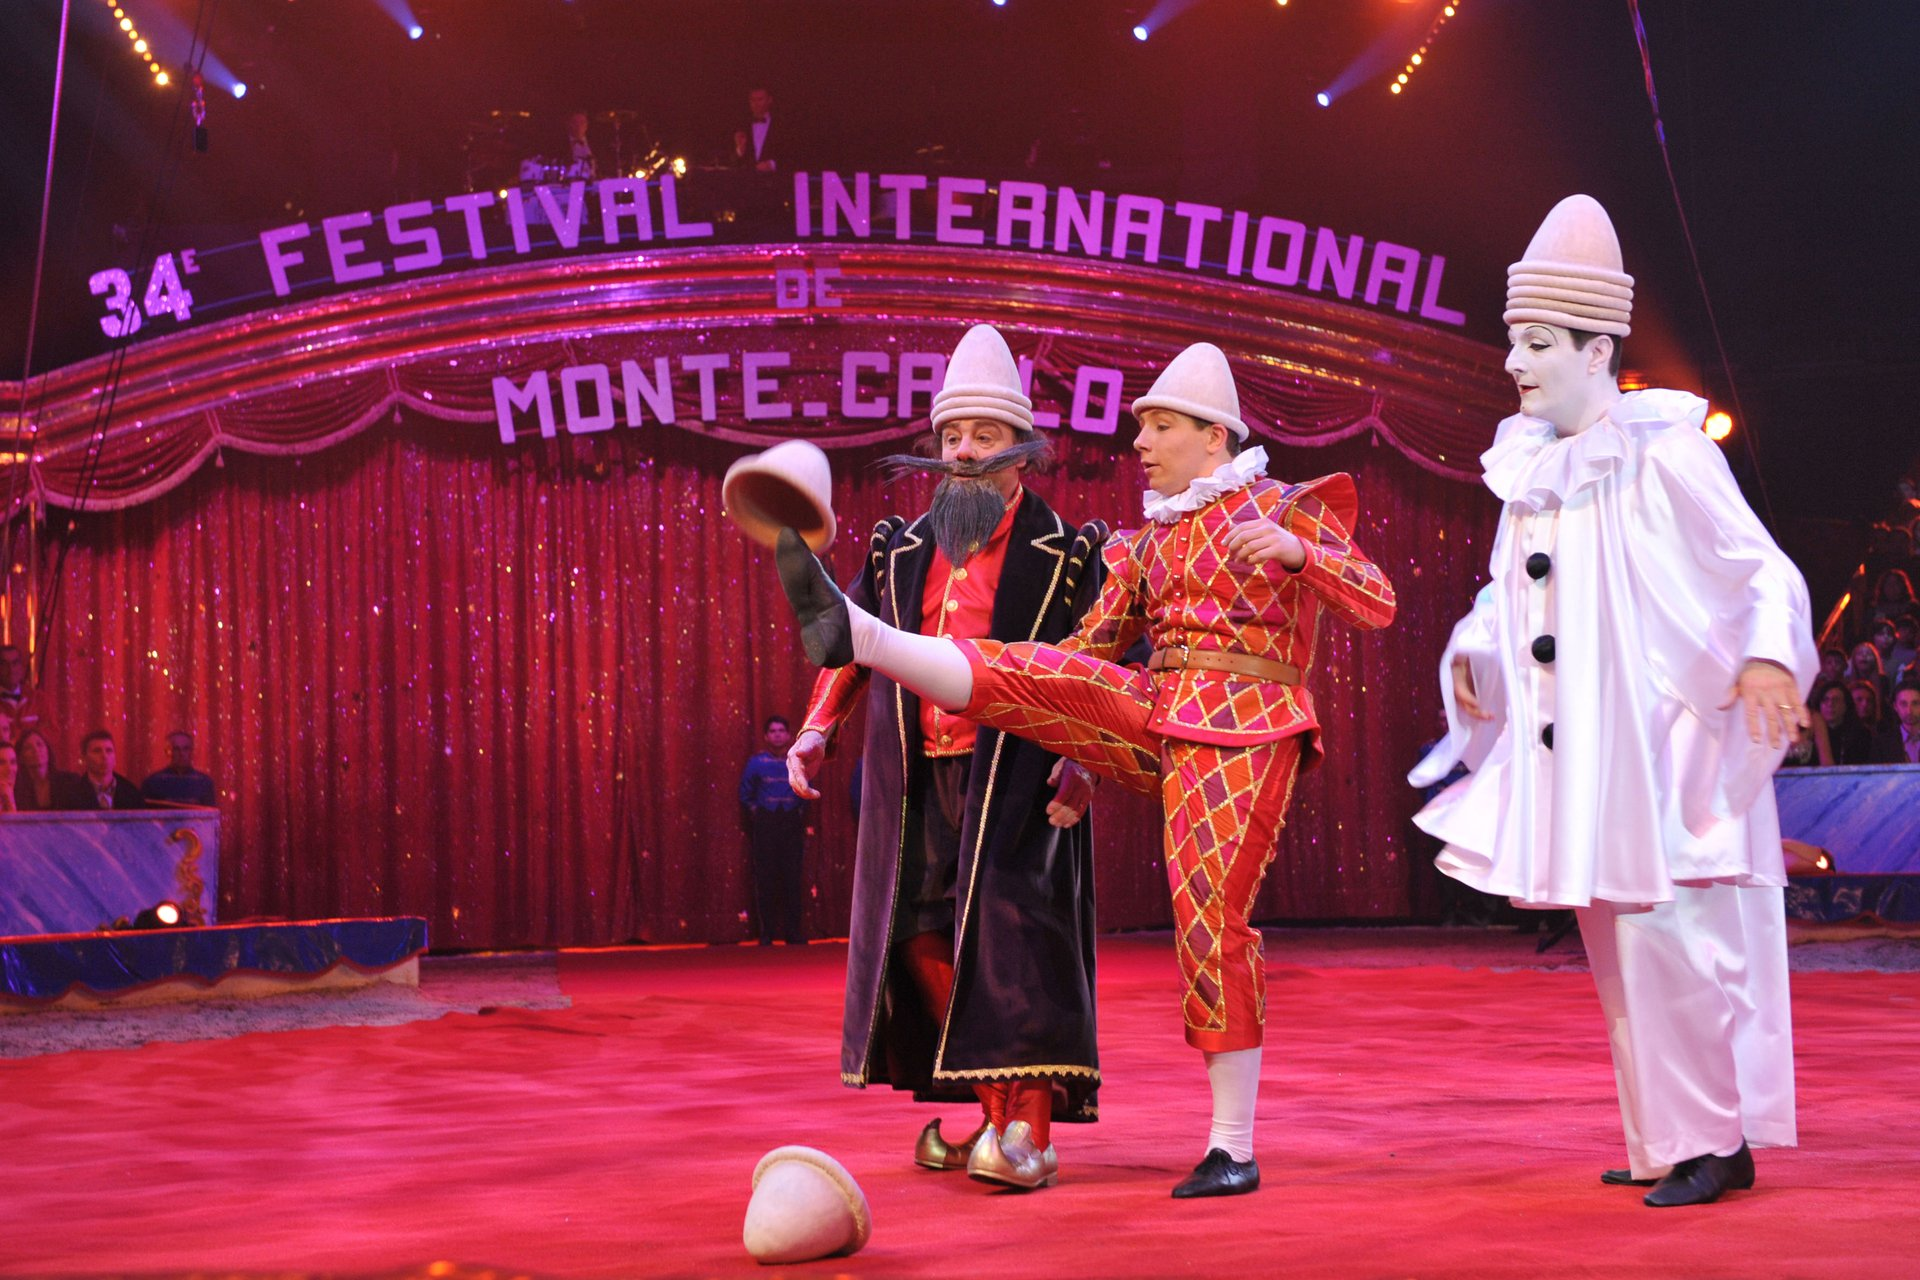 International Circus Festival of Monte-Carlo in Monaco 2019 - Best Time